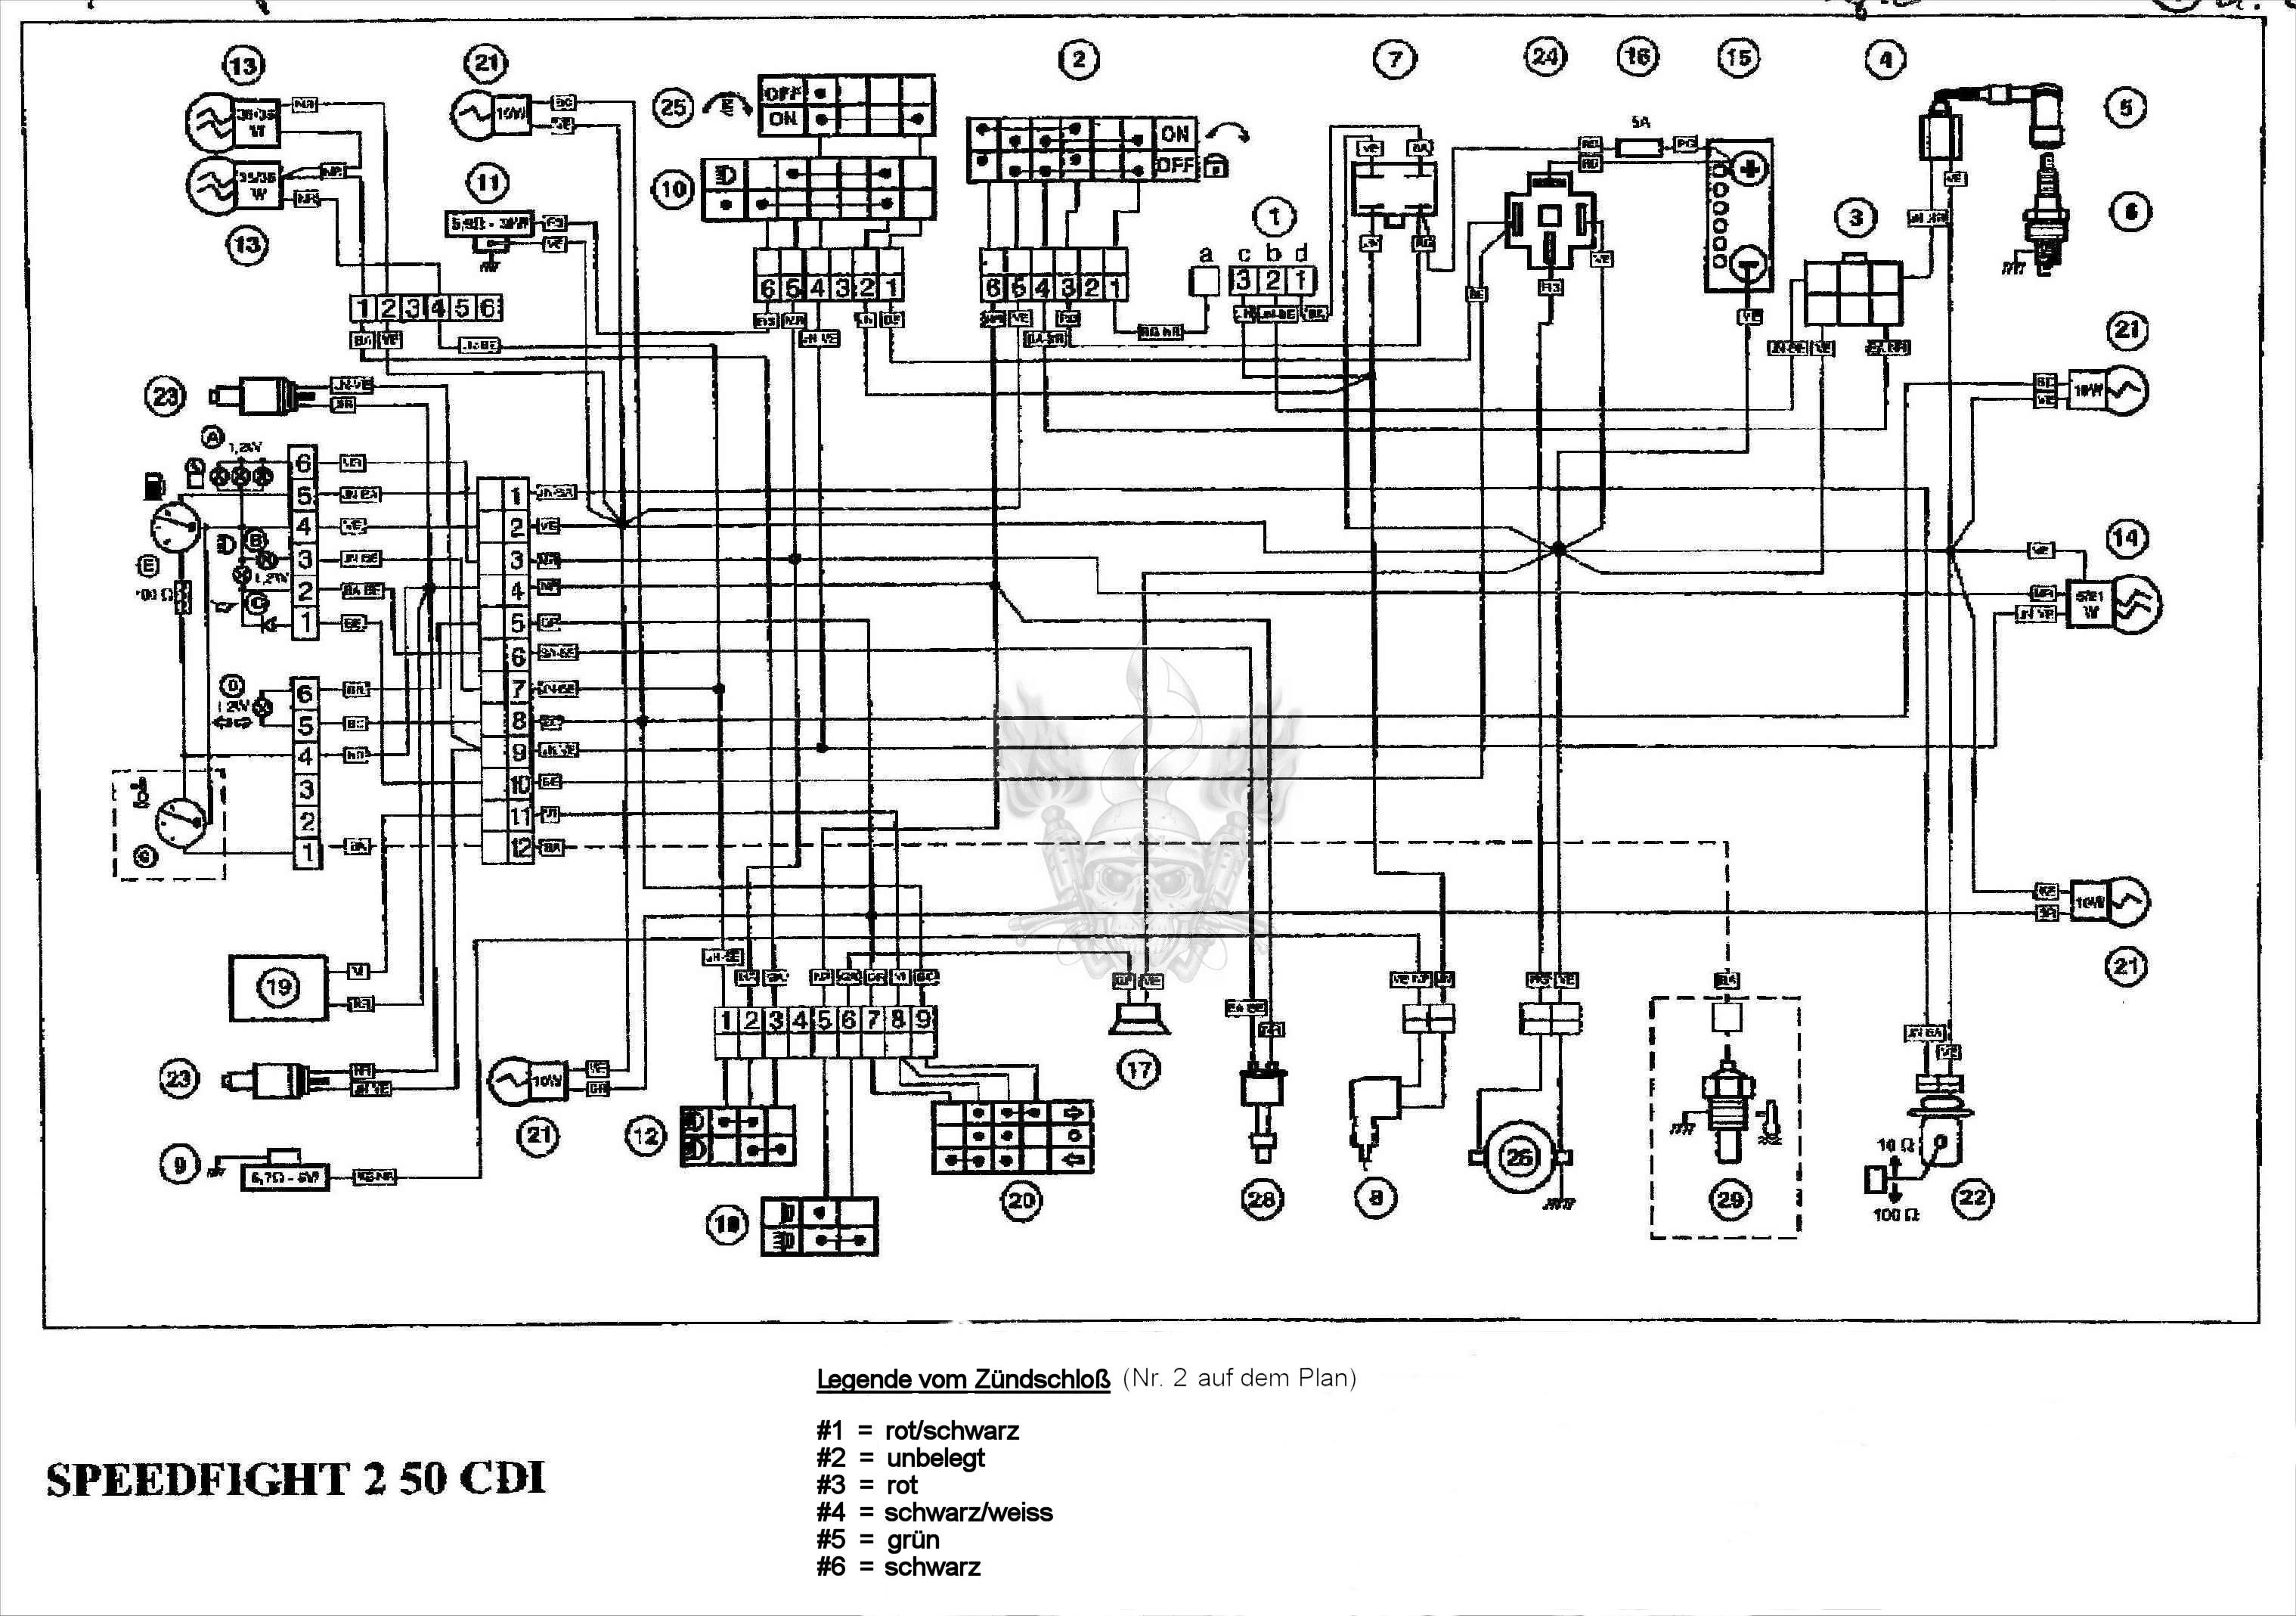 Yy50qt 6 Wiring Diagram Worksheet And For 150cc Gy6 Scooter Jonway 49cc Engine